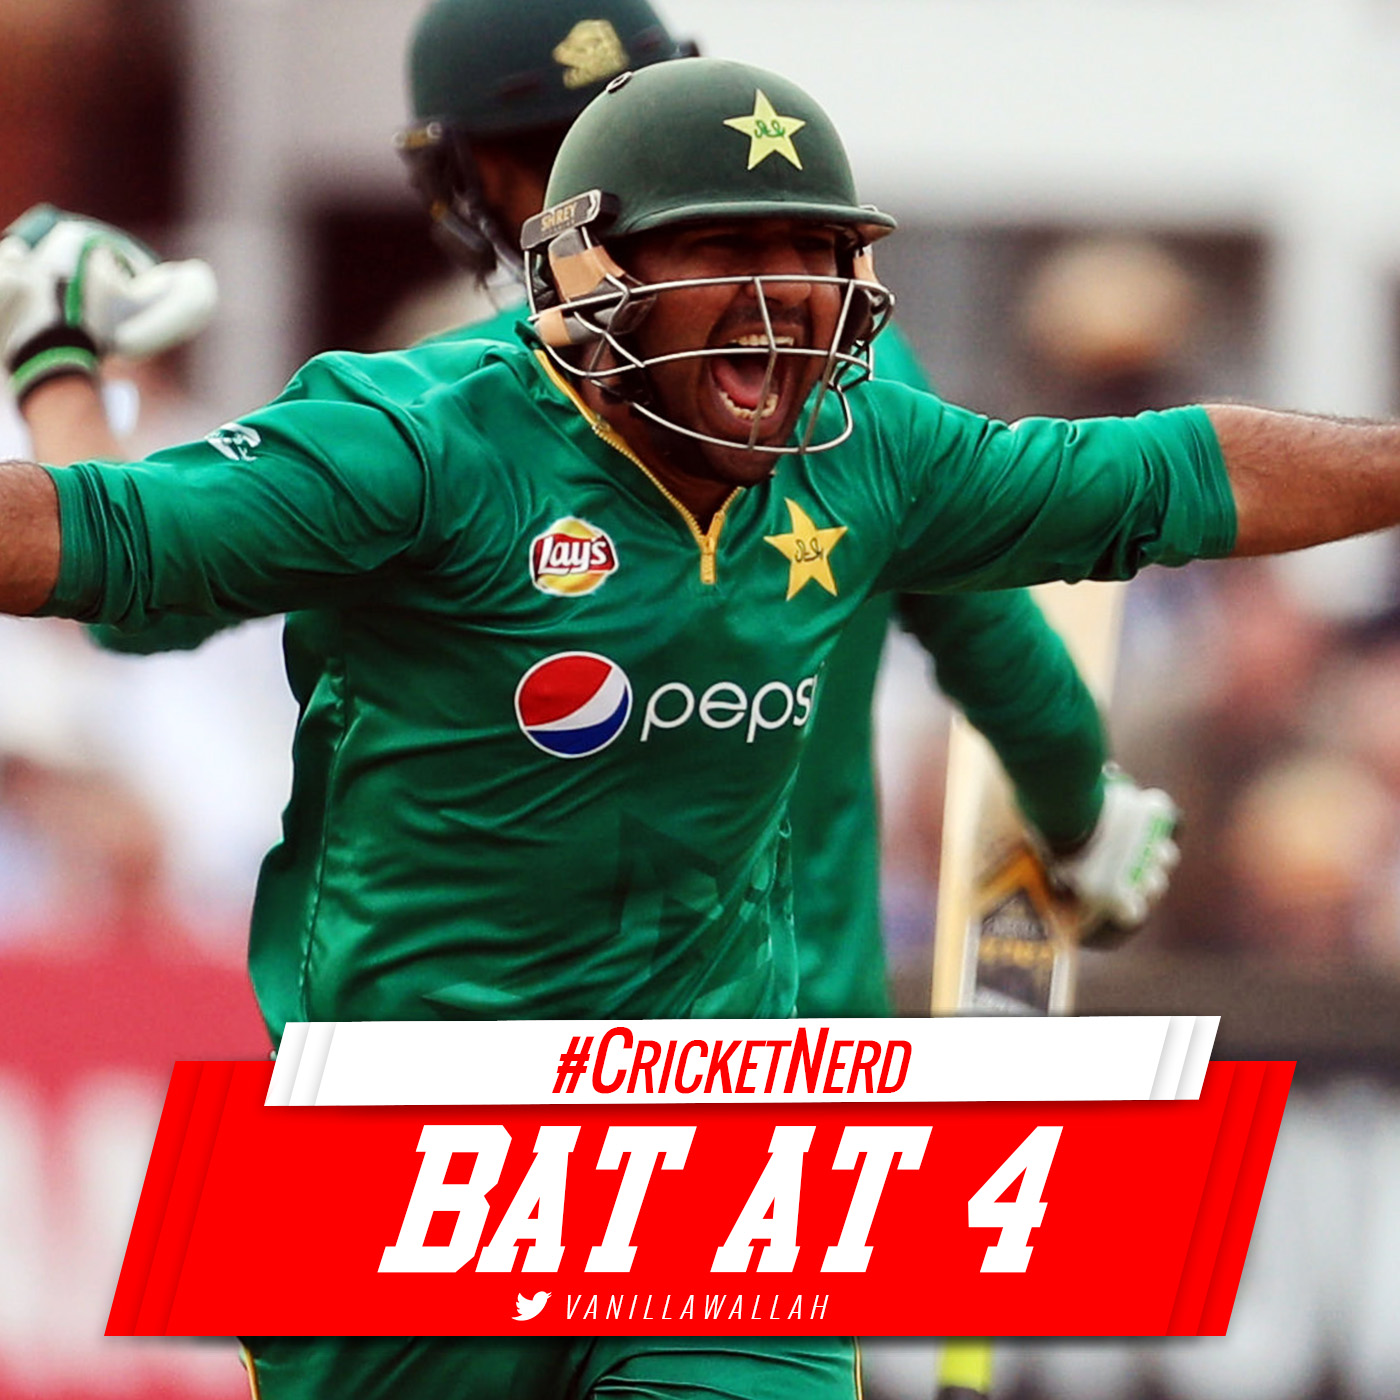 The Case for Sarfraz to bat at 4